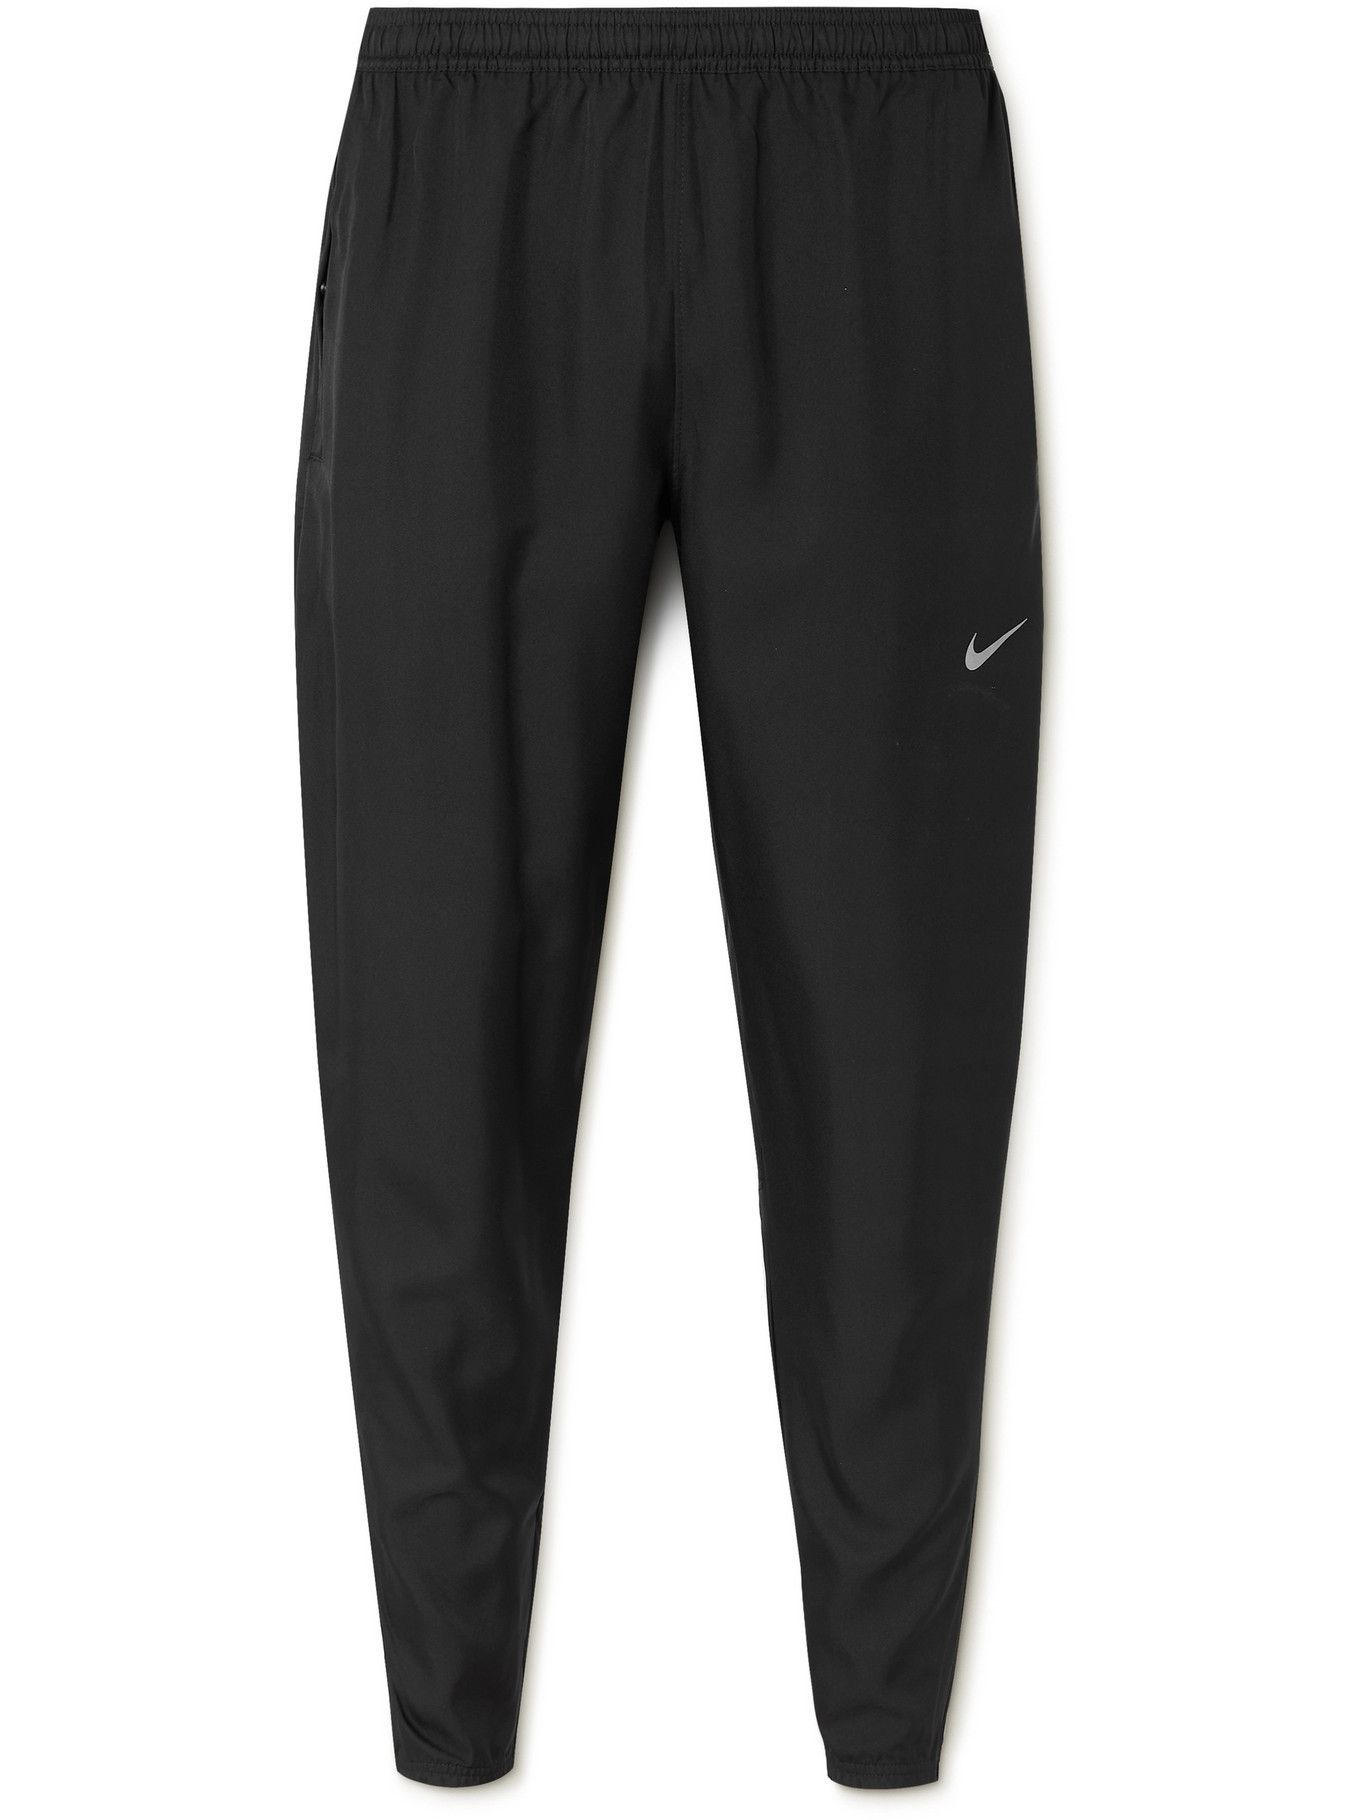 NIKE RUNNING - Tapered Recycled Dri-FIT Sweatpants - Black